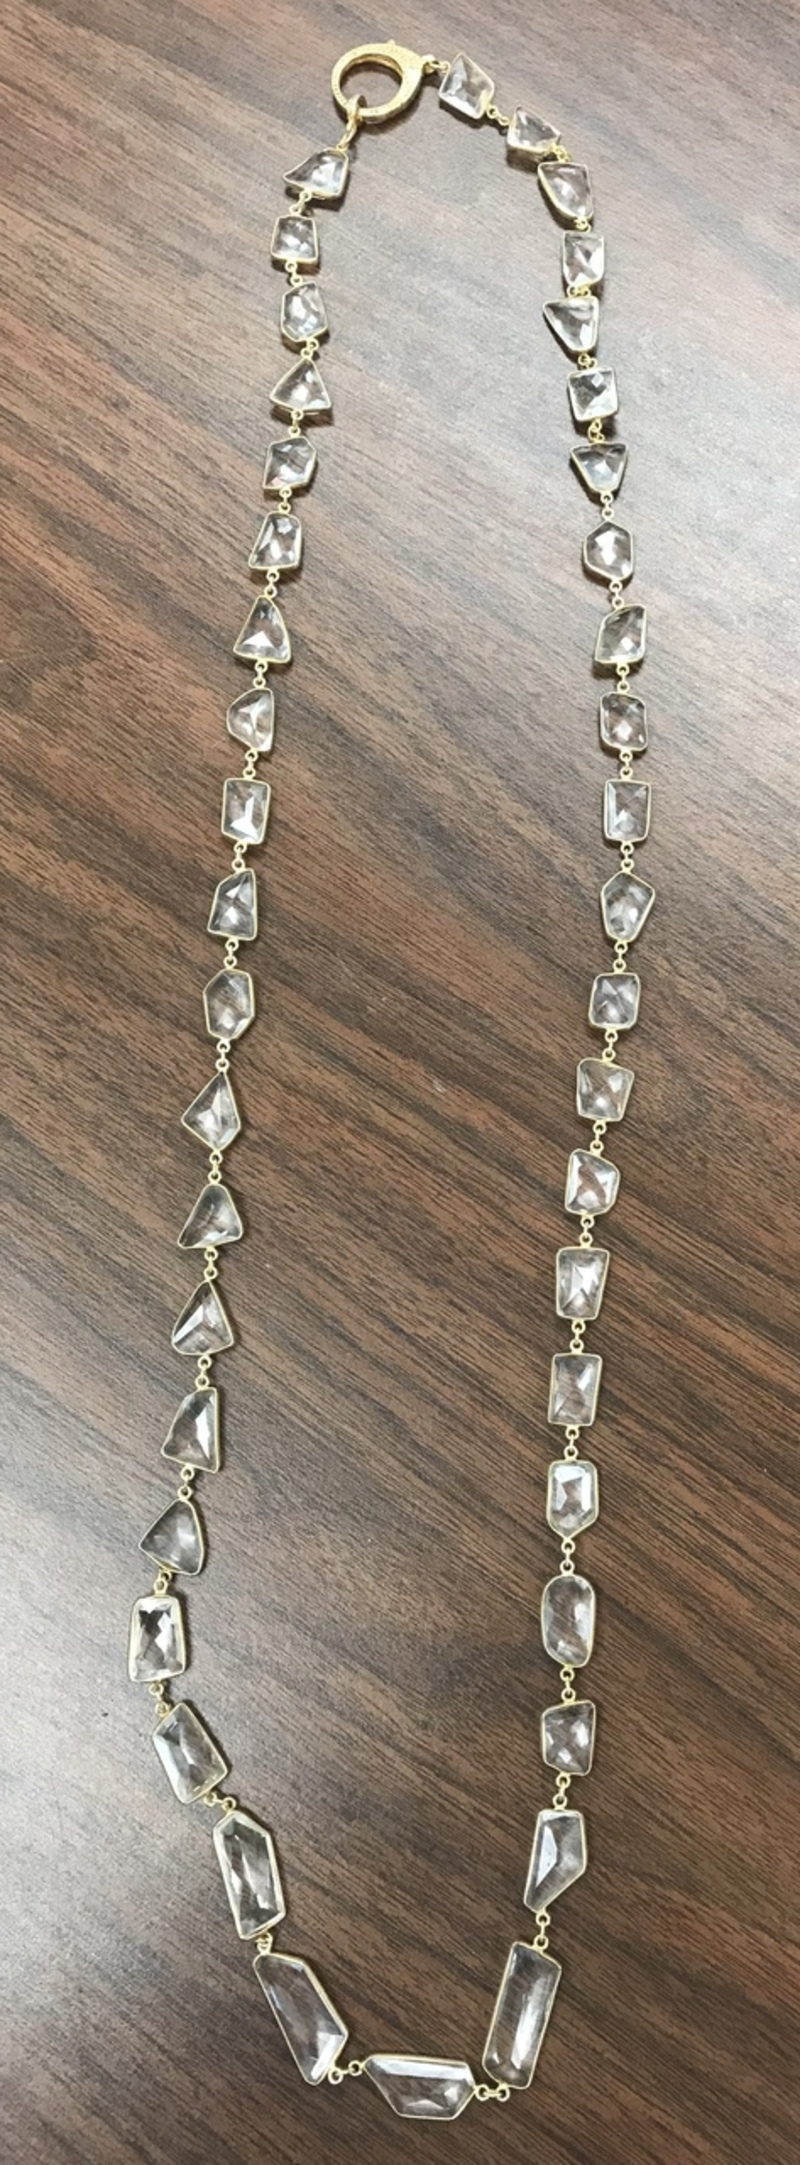 Quartz Long Necklace